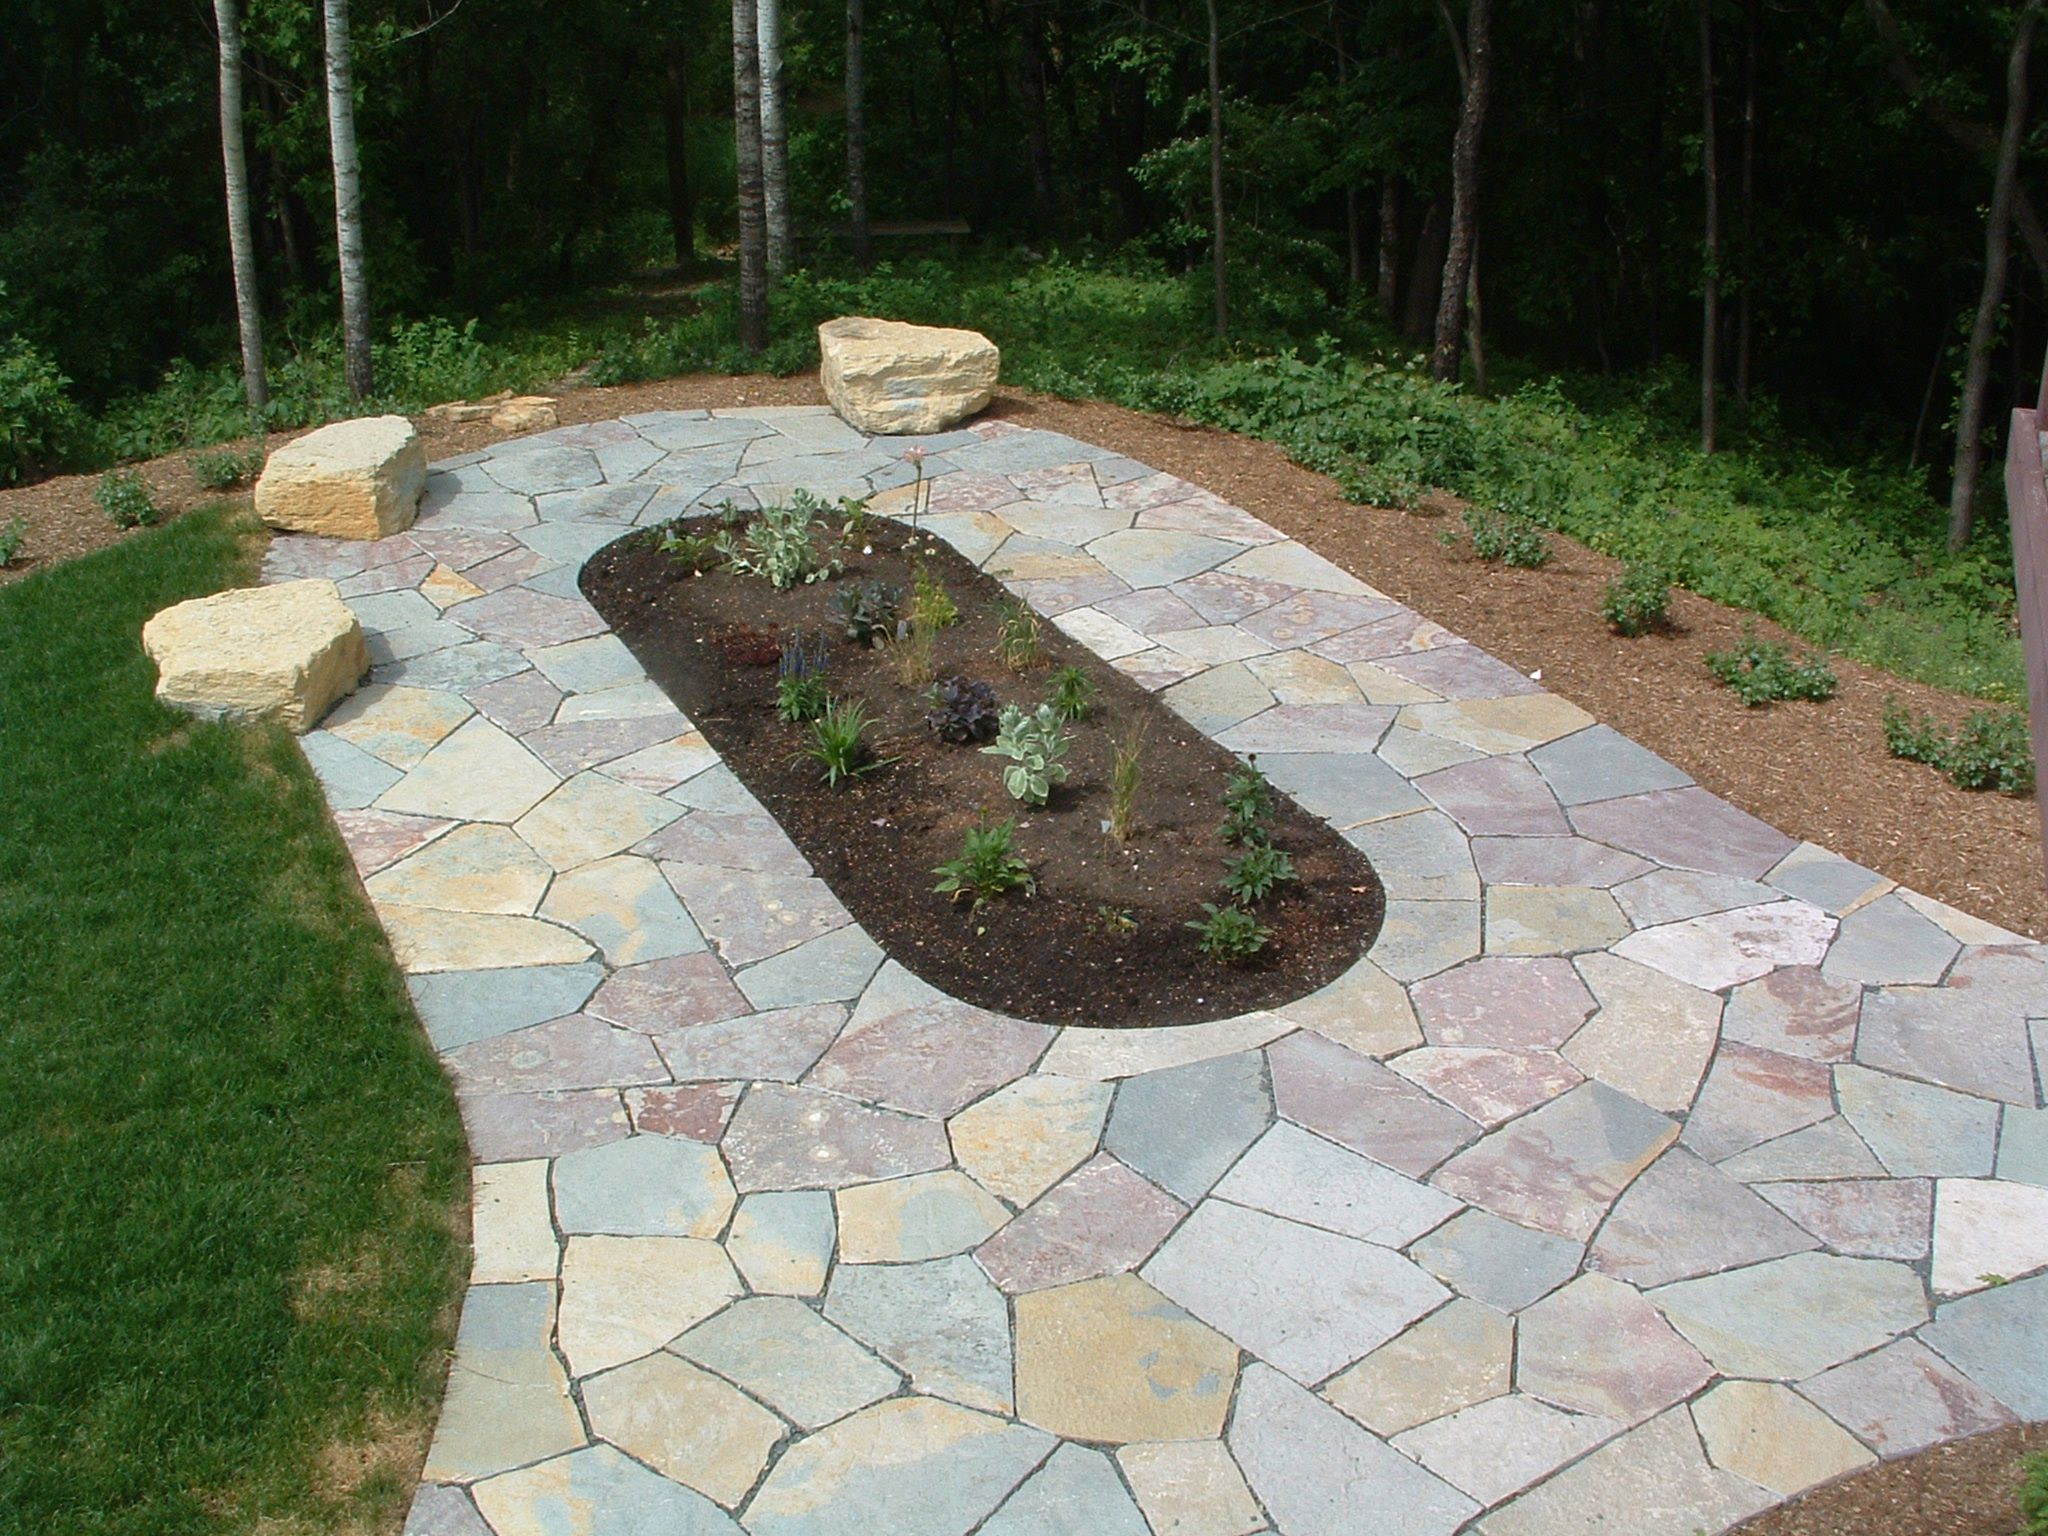 Natural Stone Walkways : Natural stone patio walkway with flower bed and boulder